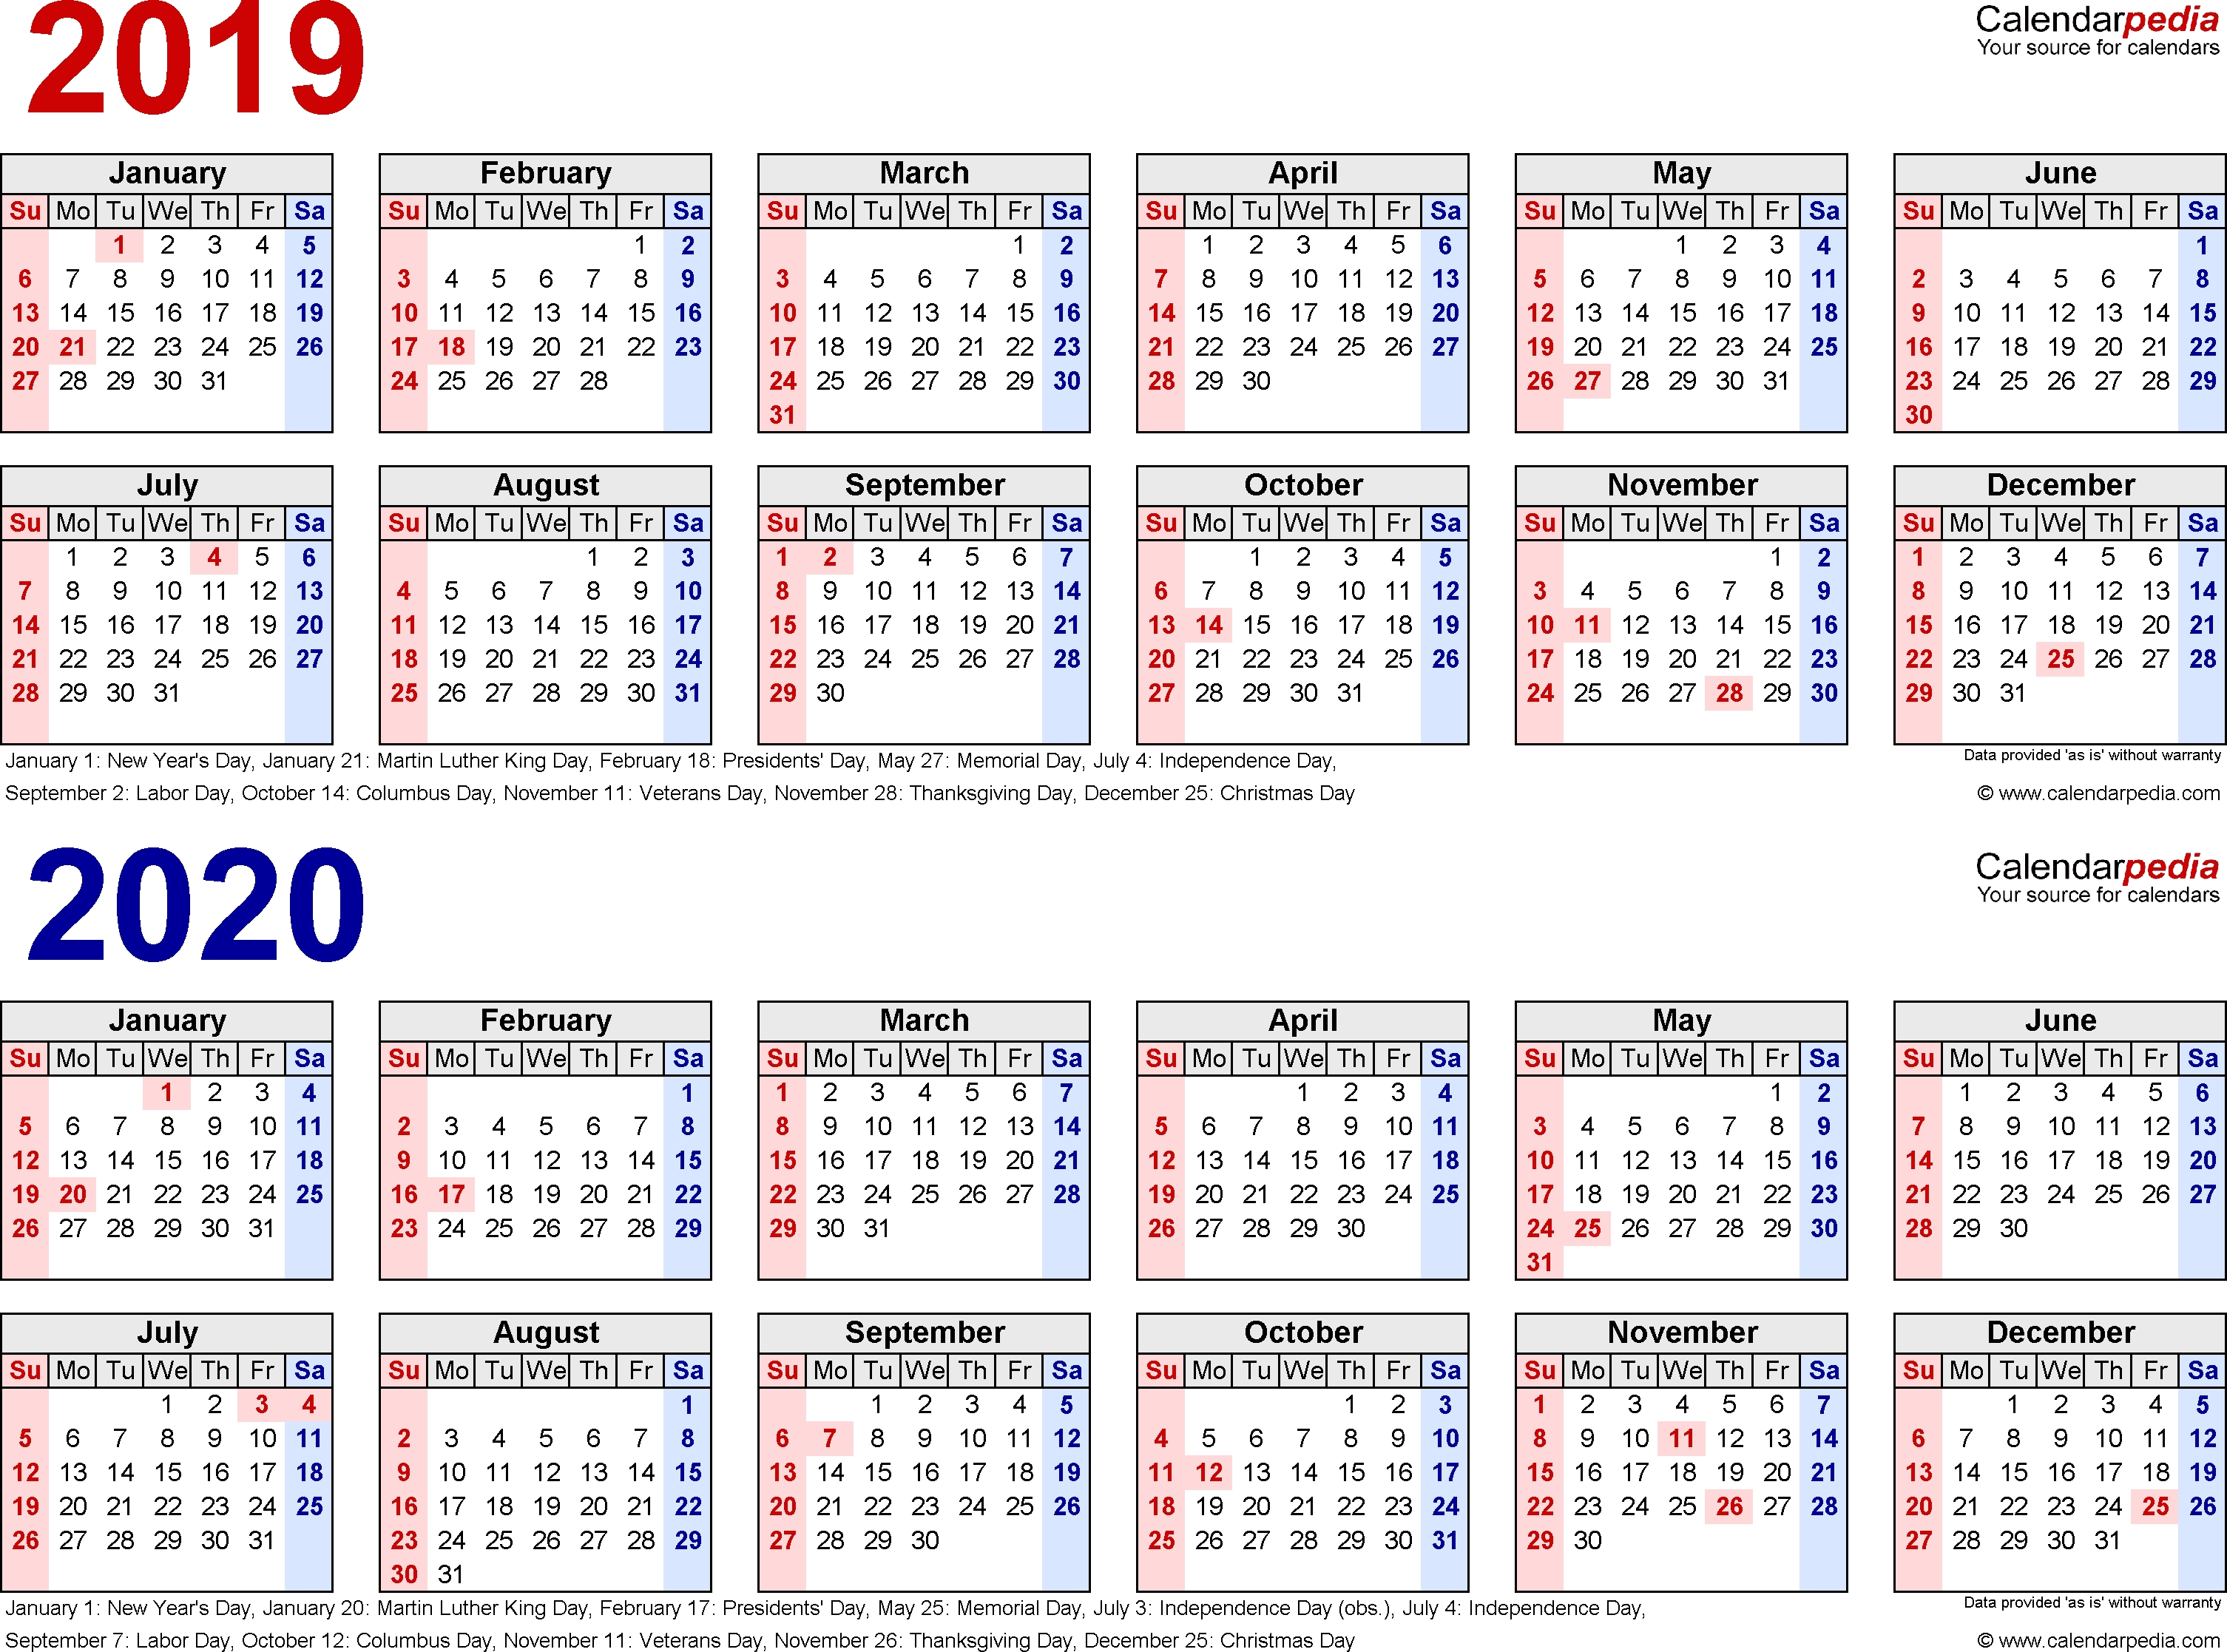 2019-2020 Calendar - Free Printable Two-Year Excel Calendars with regard to A4 Yearly Calendars For 2019 And 2020